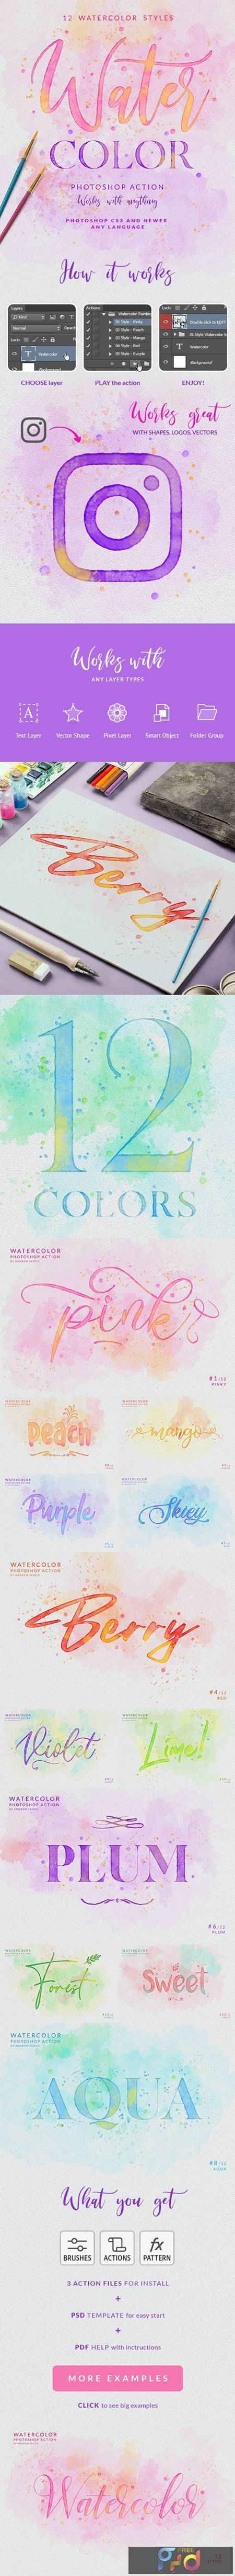 Watercolor Painting - Photoshop Action 25787736 1